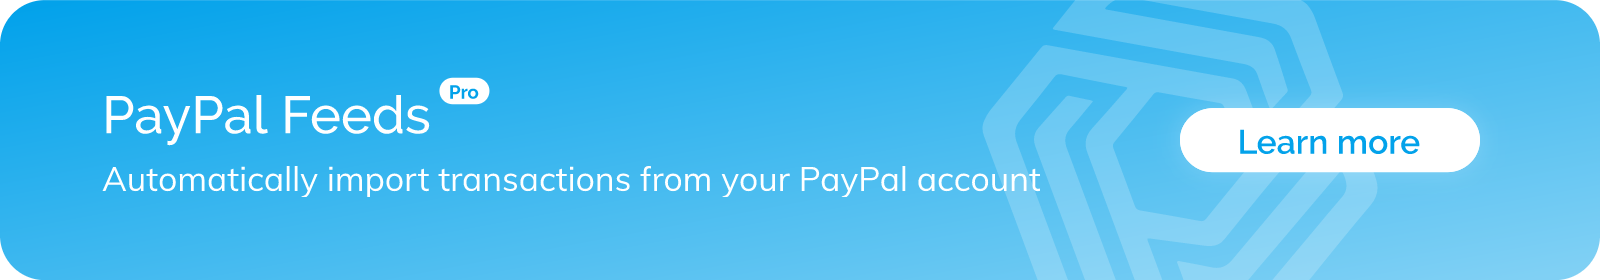 Automated PayPal Feeds